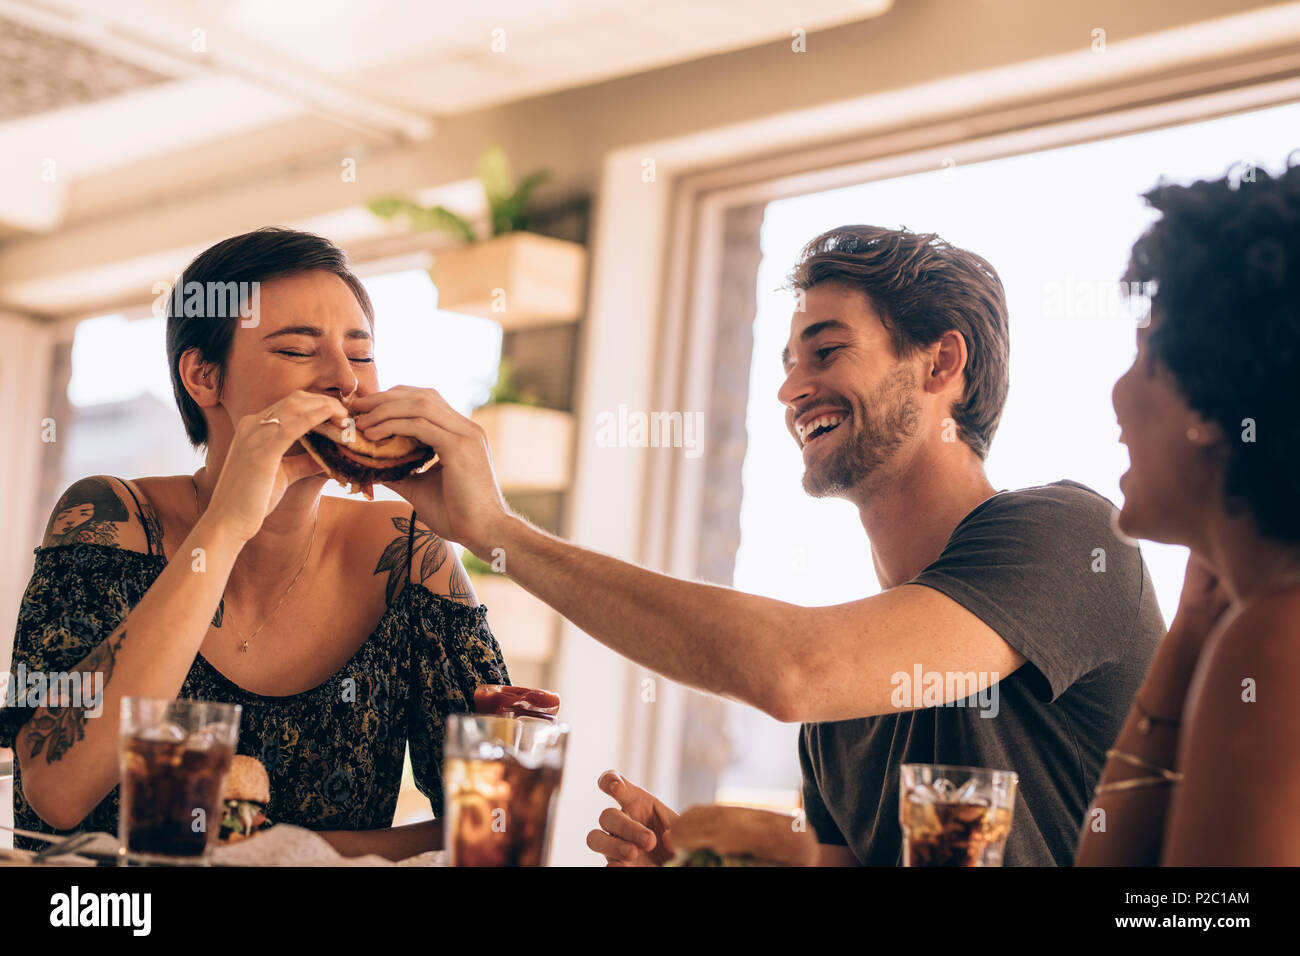 Woman taking a bite from friends burger at restaurant. Group of young people having food at a restaurant. - Stock Image